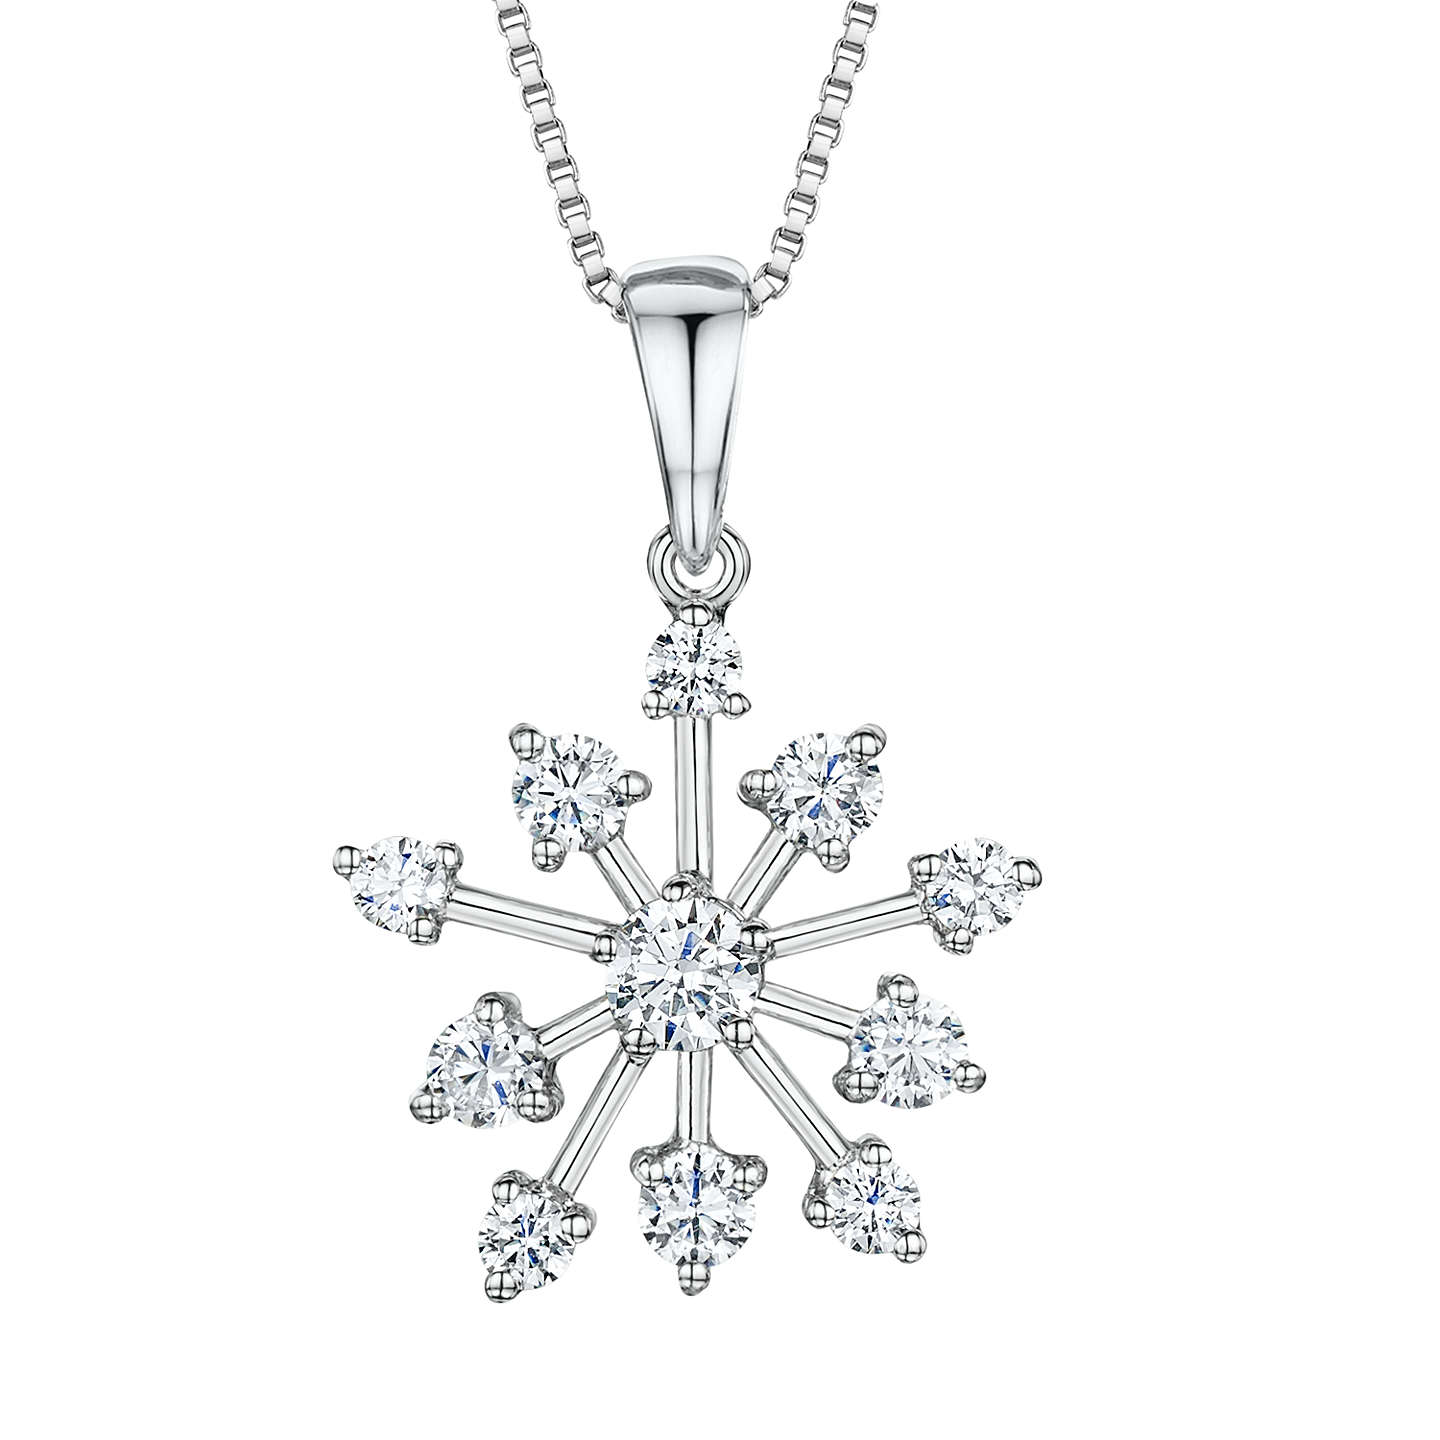 singh amrita shop necklace main clear snowflake product pendant jewelry nkc gold